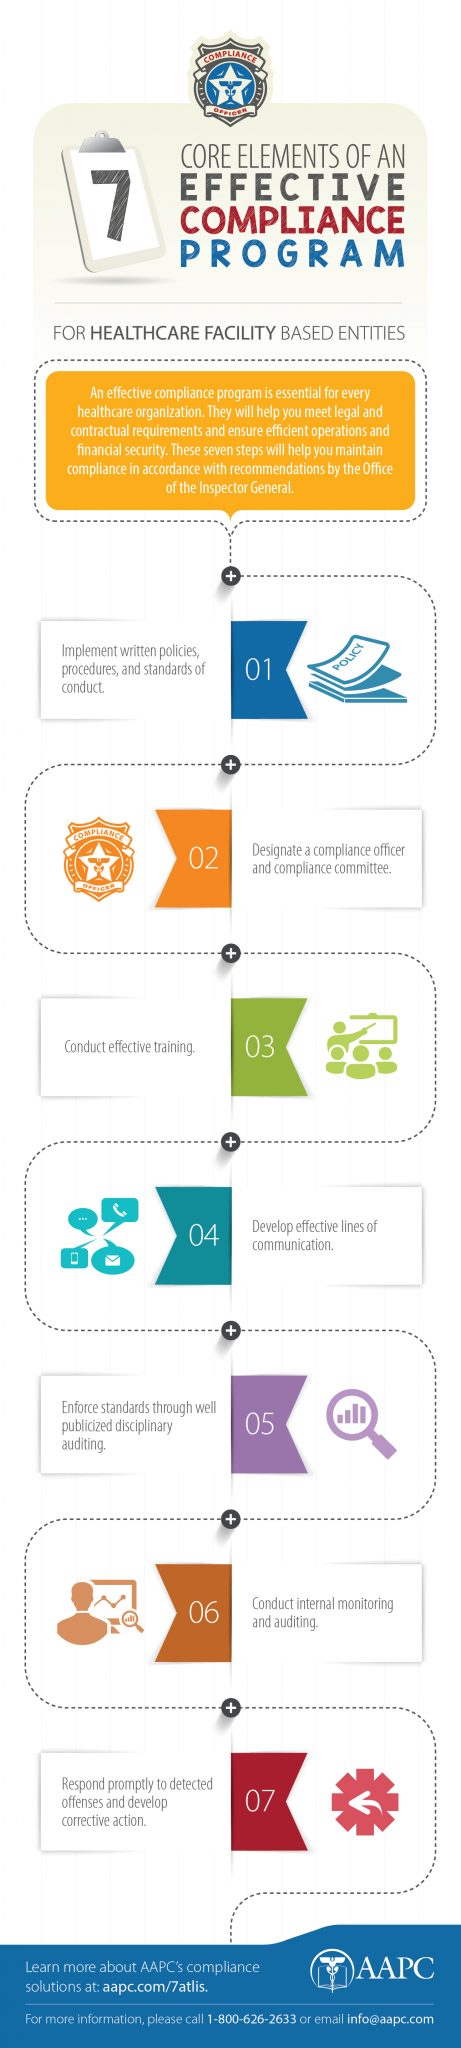 Compliance-Program-Infographic